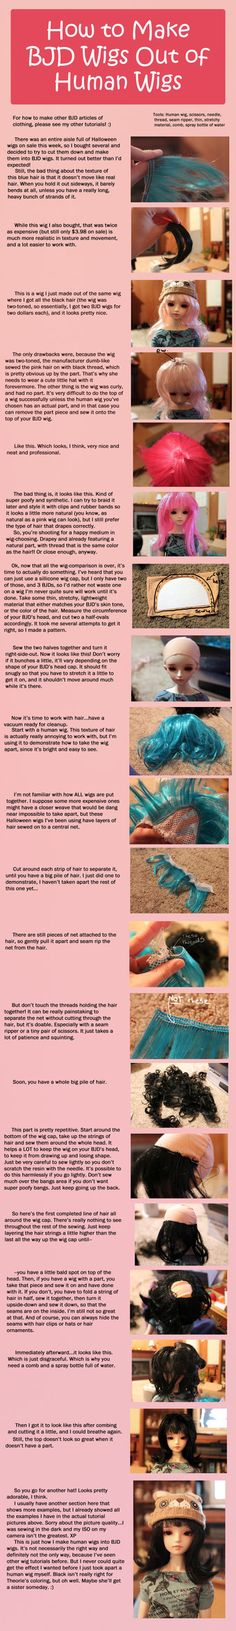 How to make BJD wigs from human wigs RodianAngel.devia … on deviantART men toupee women toupee Doll Wigs, Doll Hair, Clay Dolls, Bjd Dolls, Doll Making Tutorials, Human Wigs, Doll Tutorial, Pants Tutorial, Wig Making